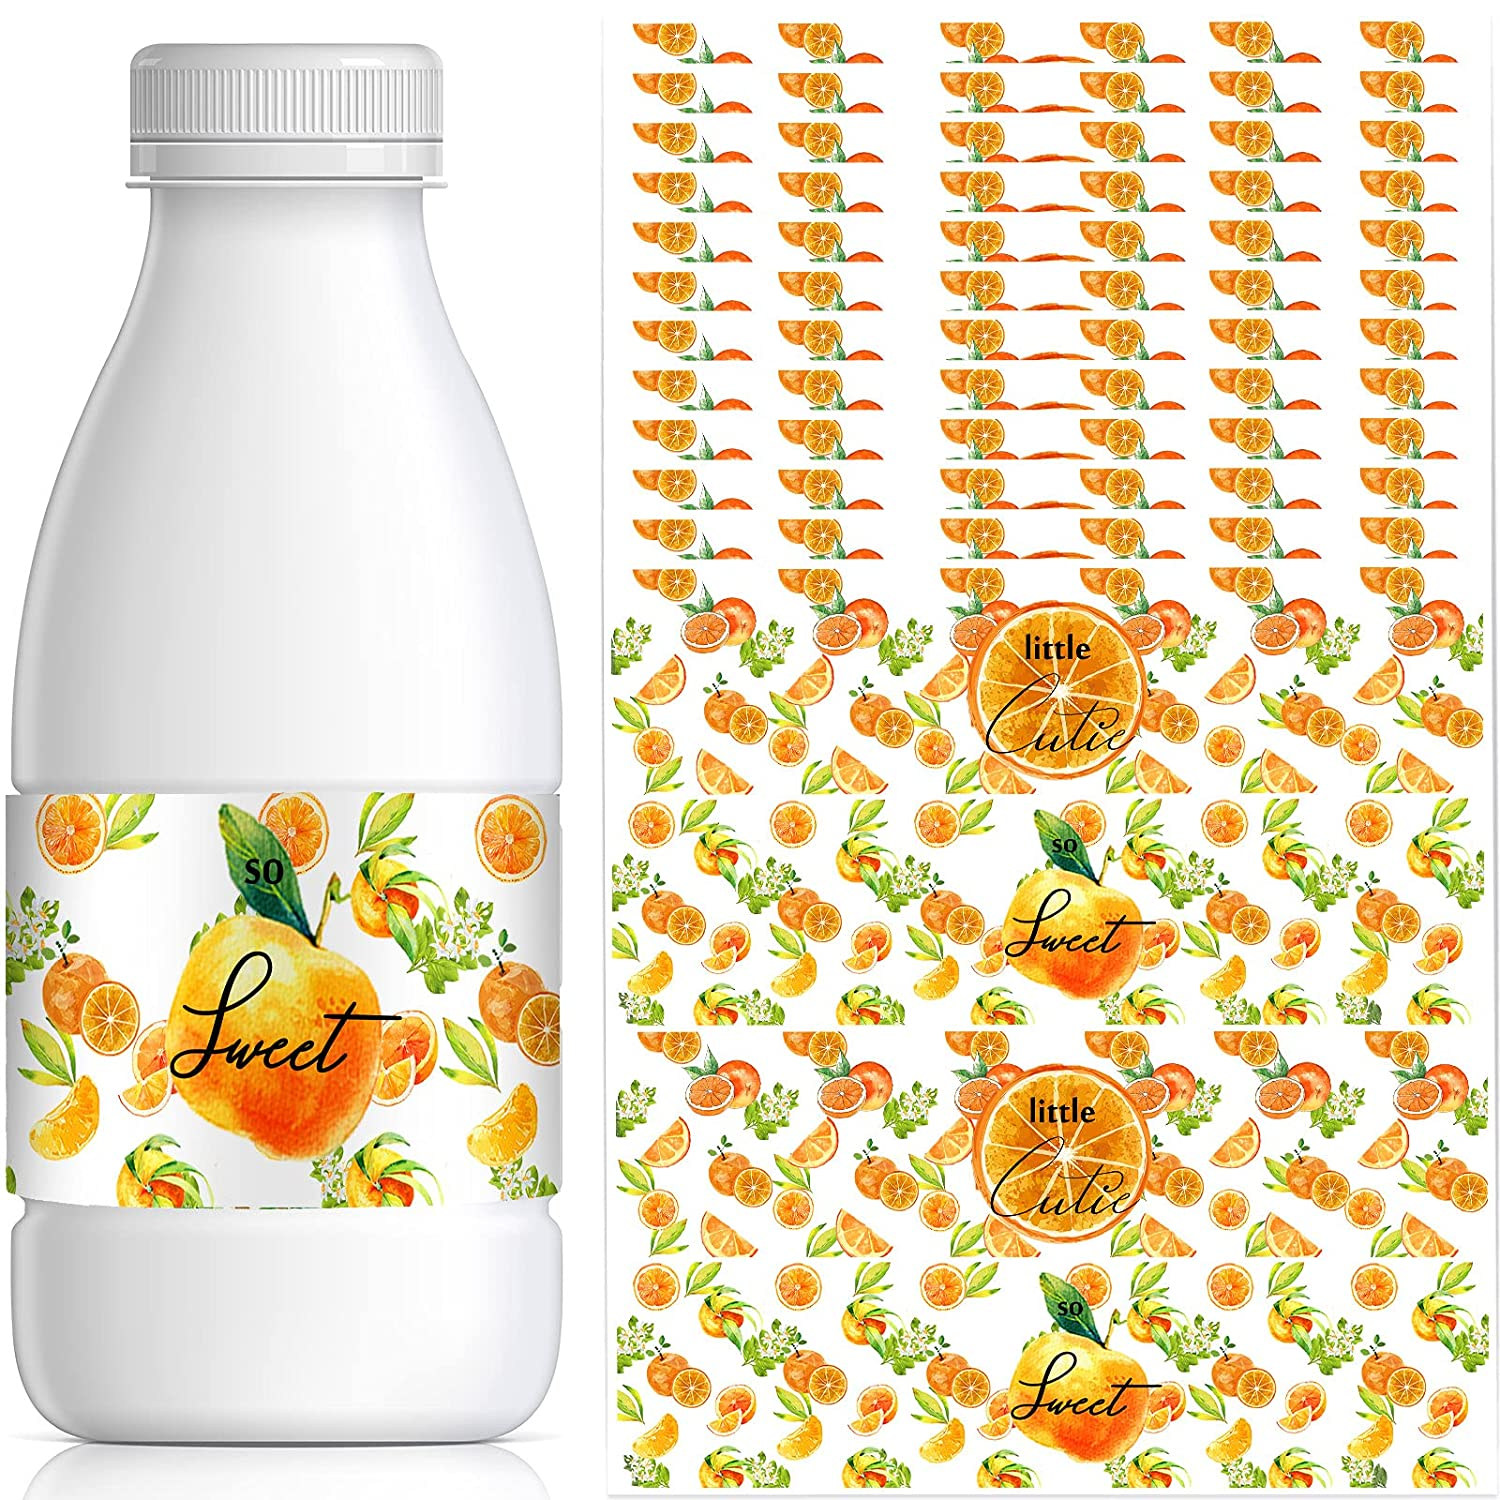 Zonon 48 Pieces Baby Shower Water Bottle Labels Set Includes Little Cutie Orange Bottle Stickers Wraps and So Sweet Labels Plastic Drinking Stickers for Baby Shower Party Decorations, 2 Styles